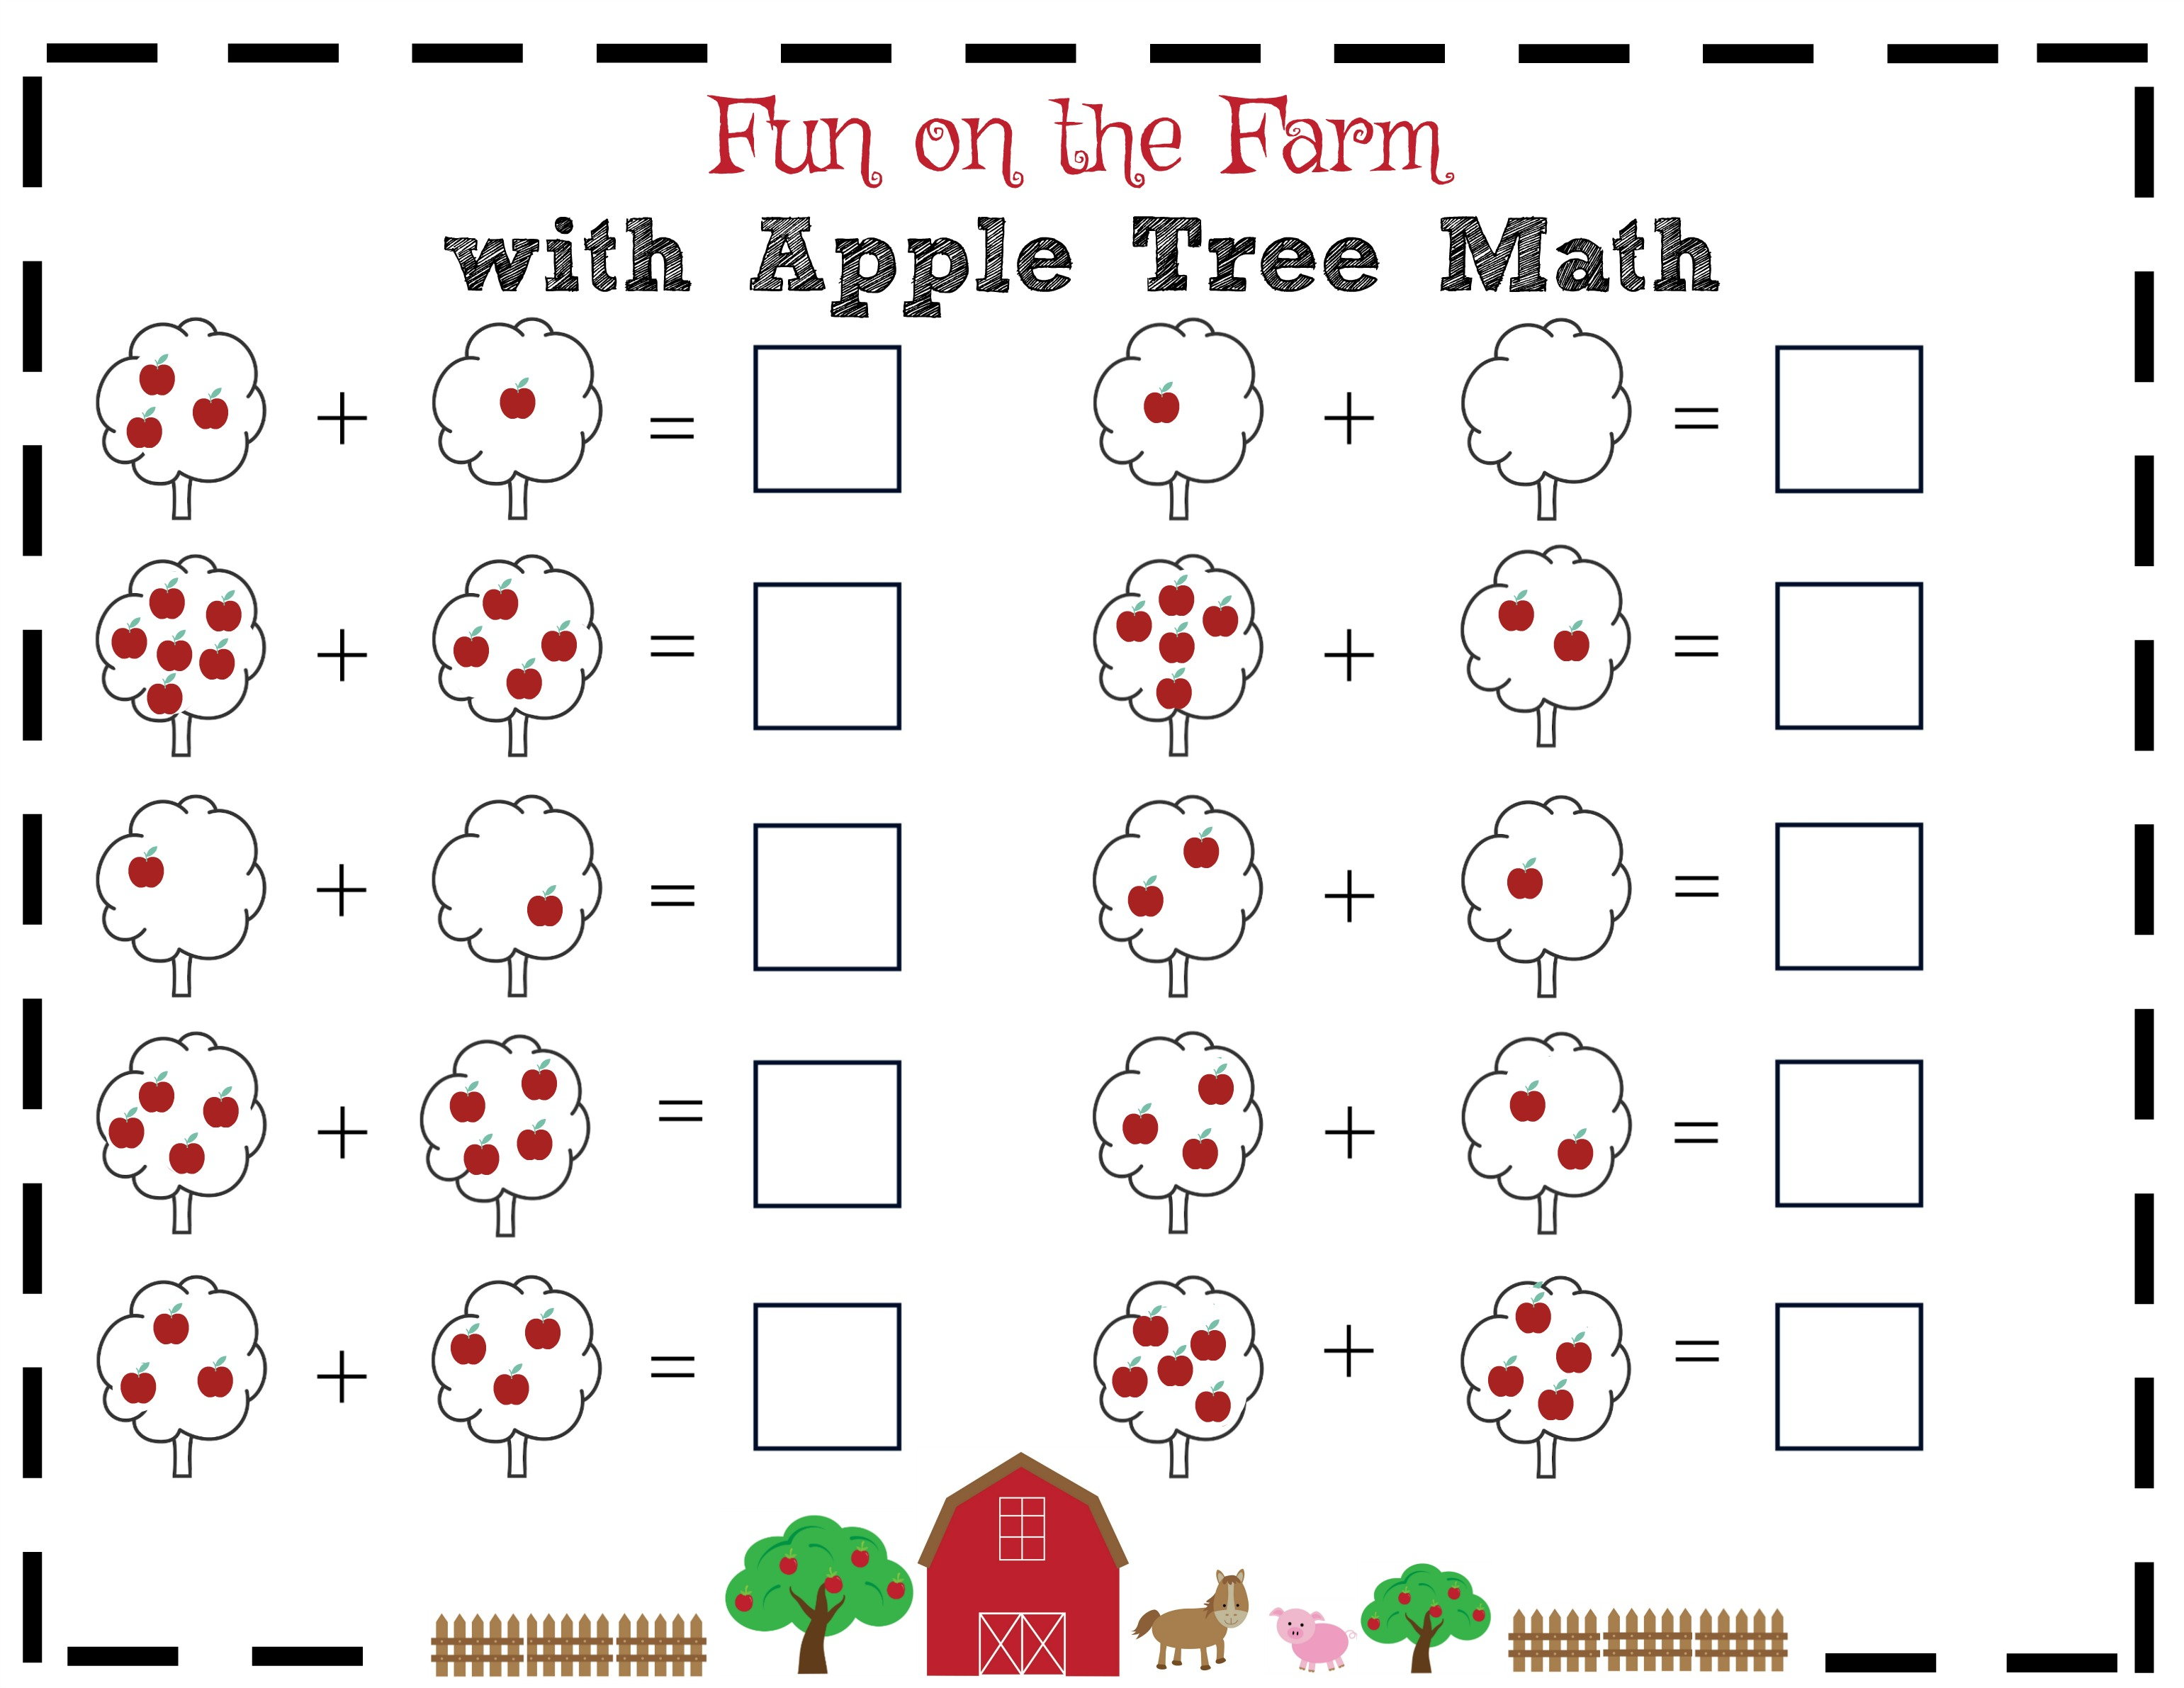 Apple Tree Math Worksheet 1 - Only Passionate Curiosity